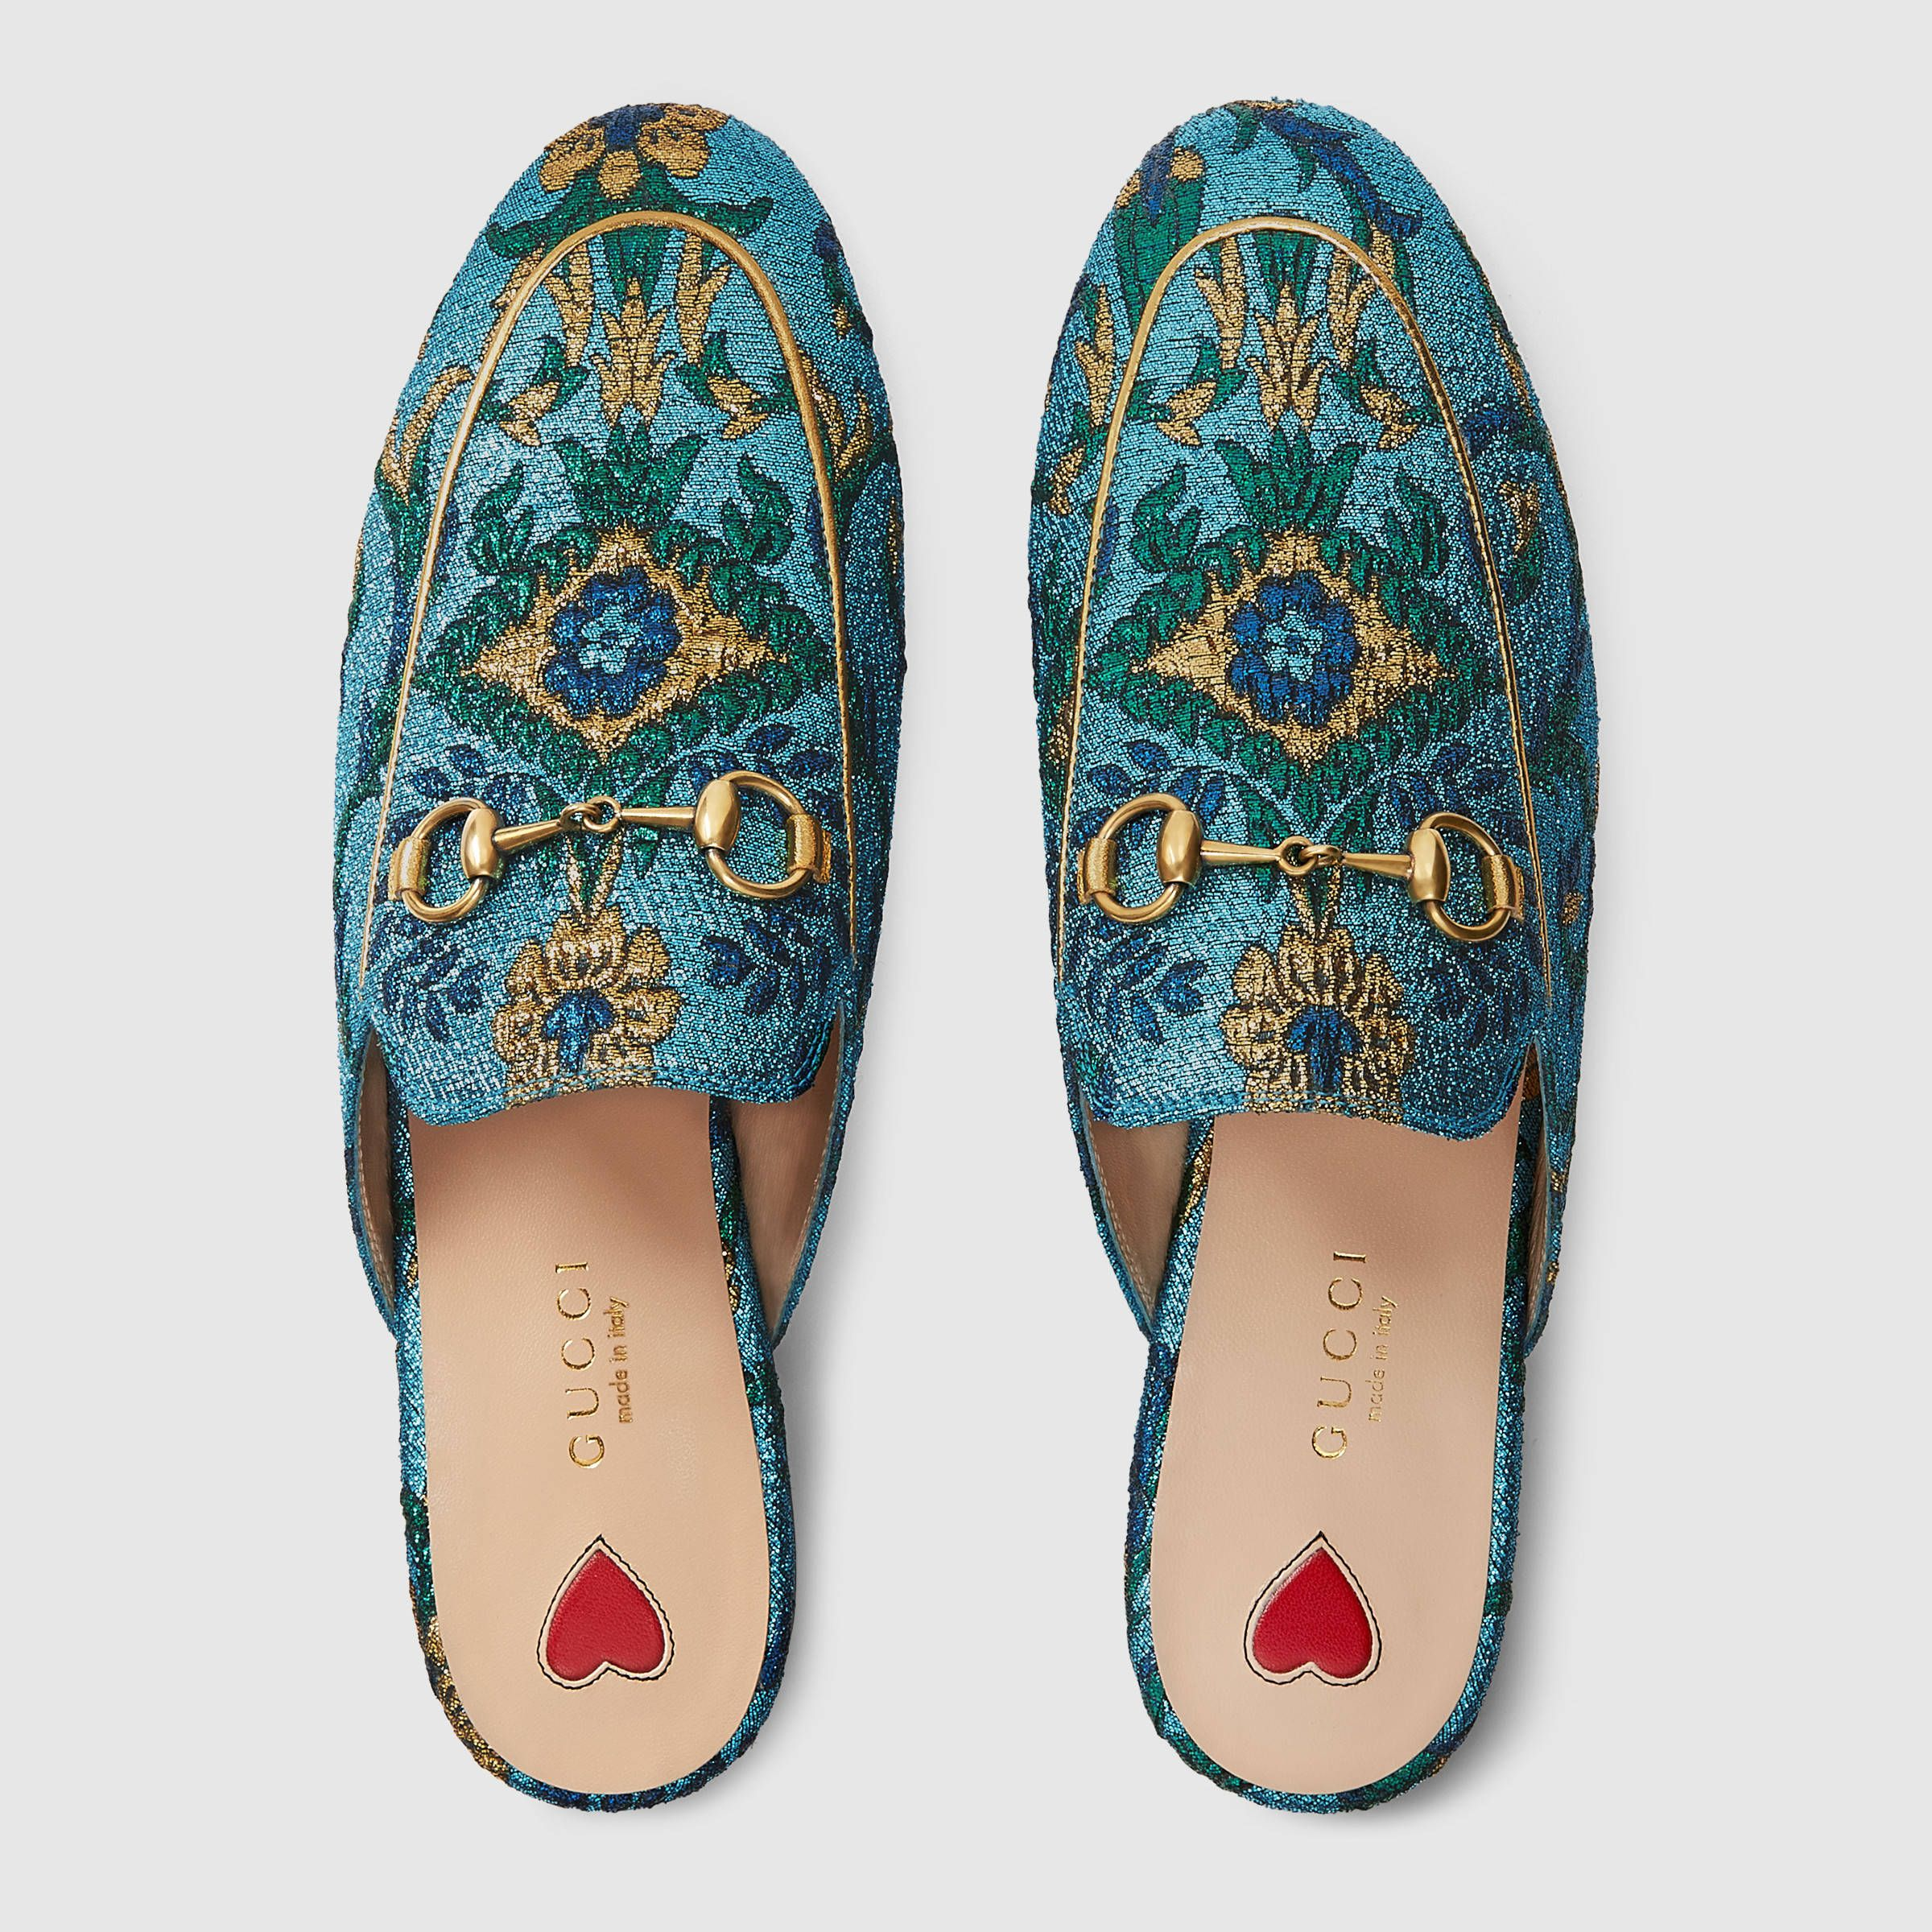 0b16faf1aa Princetown brocade slipper - Gucci Women's Moccasins & Loafers ...